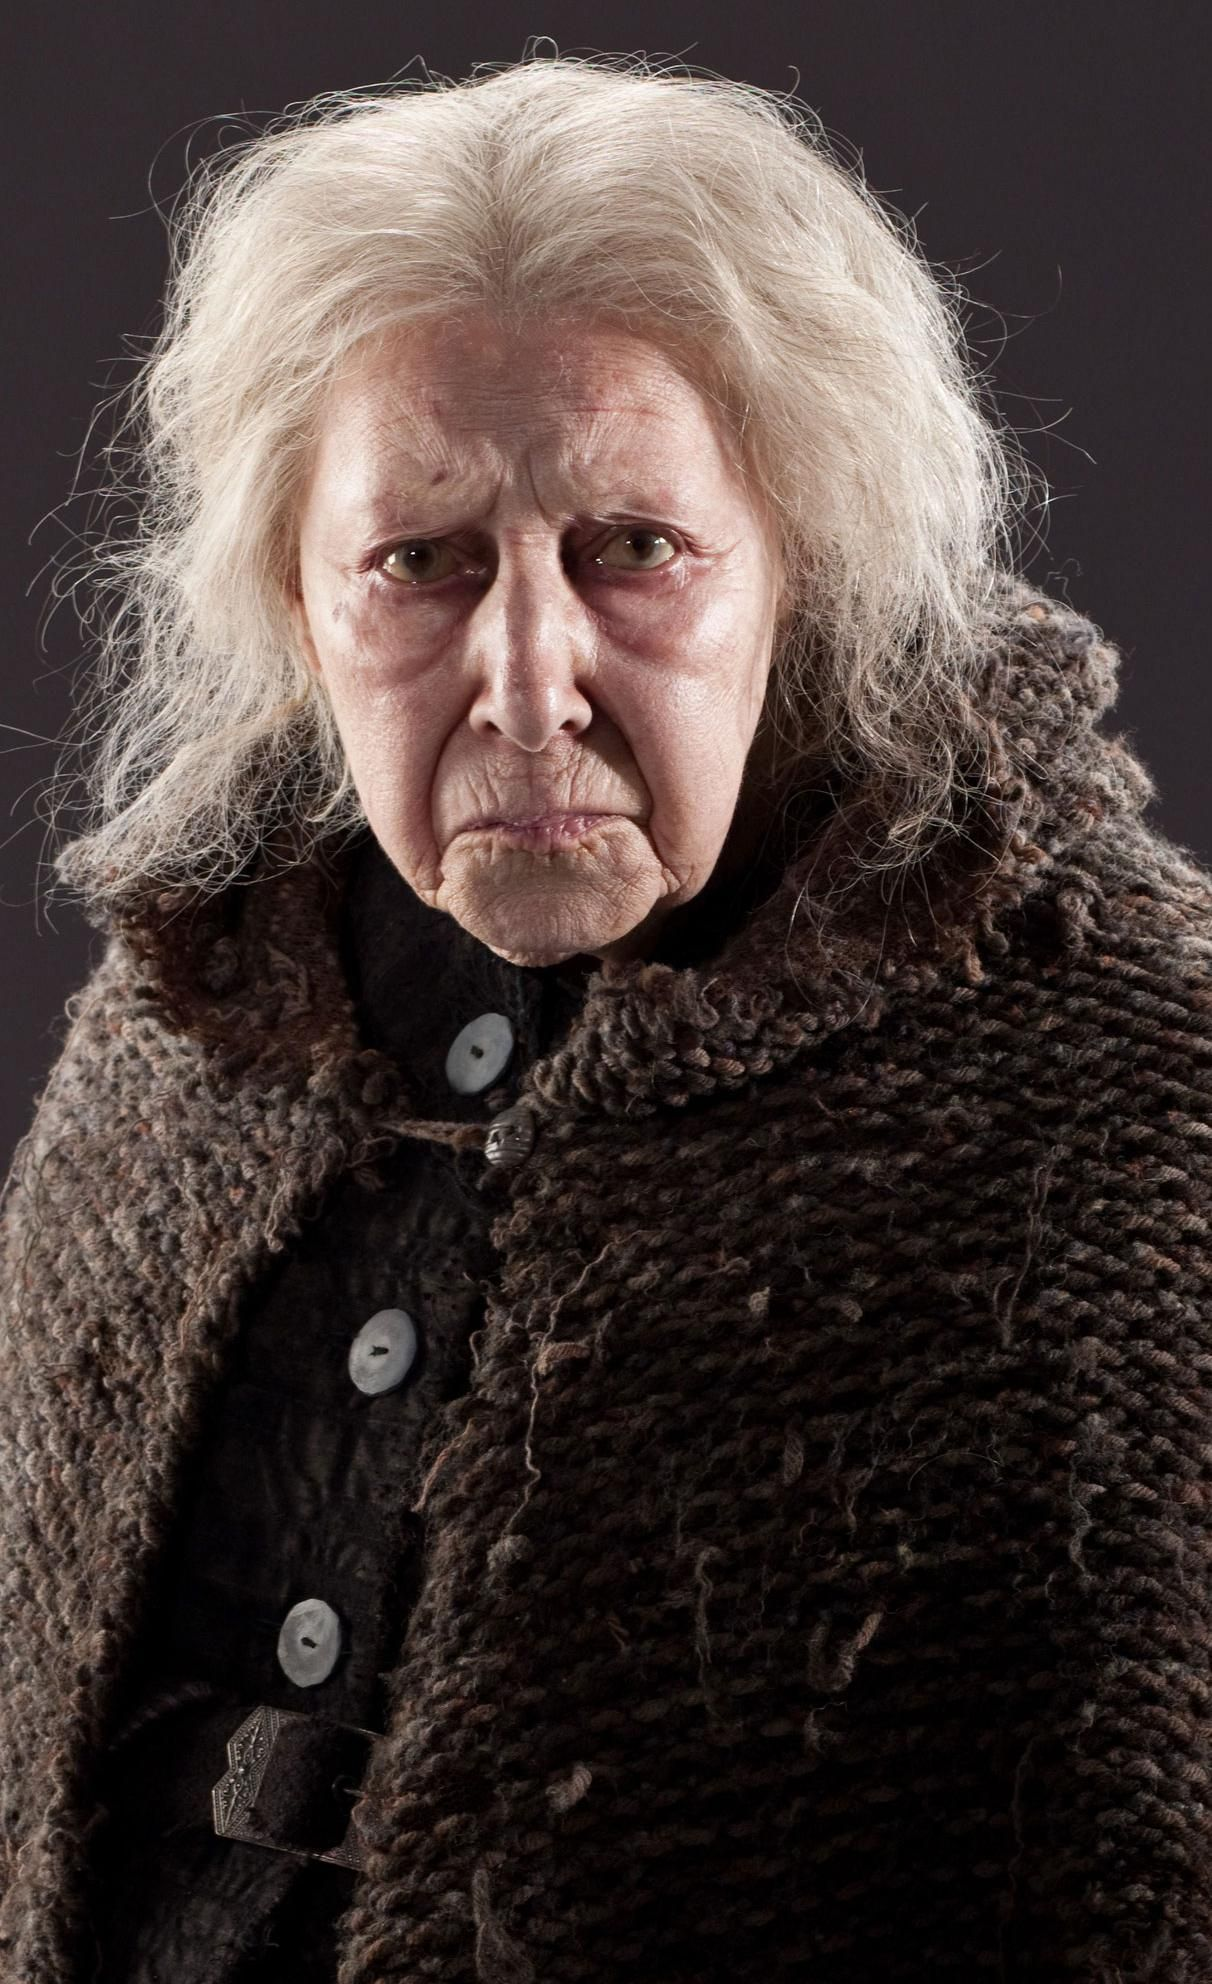 Hazel Douglas As Bathilda Bagshot A Noted Historian In The Wizarding World And Author Of The Book A H Harry Potter Characters Harry Potter Harry Potter Wiki